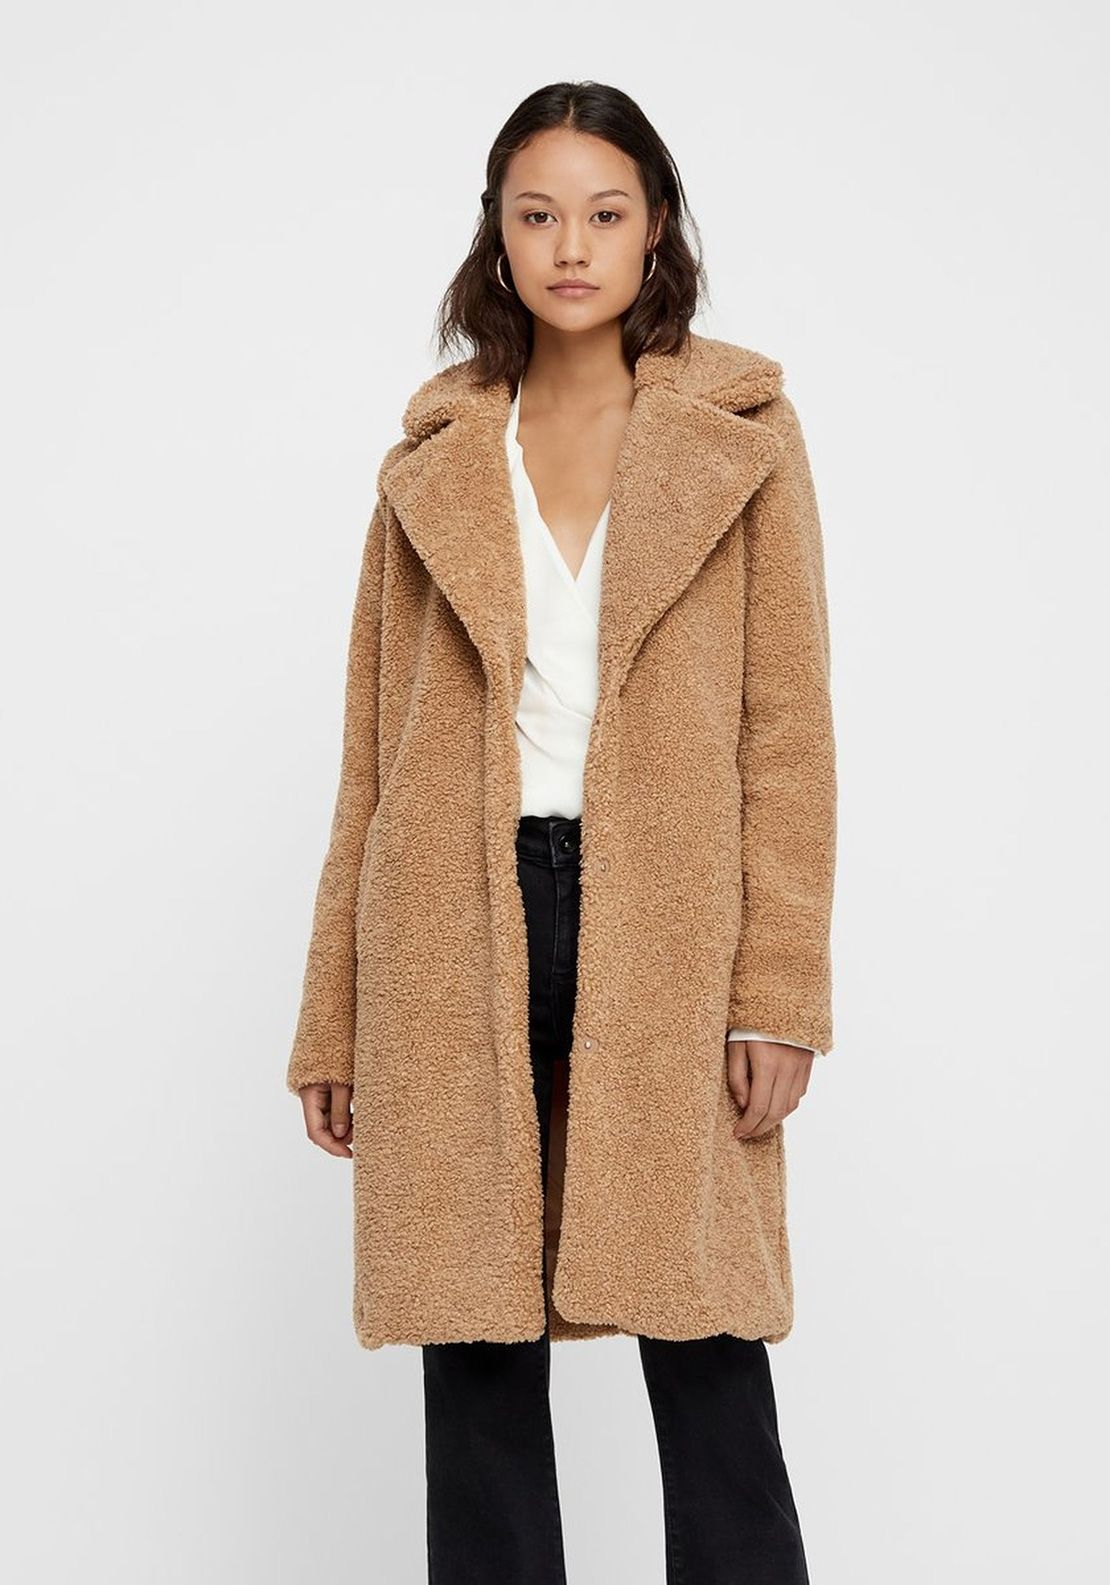 994a3532f6 Vero Moda Faux Fur Teddy Coat, Tan | Eliza (current clothes) | Coat ...